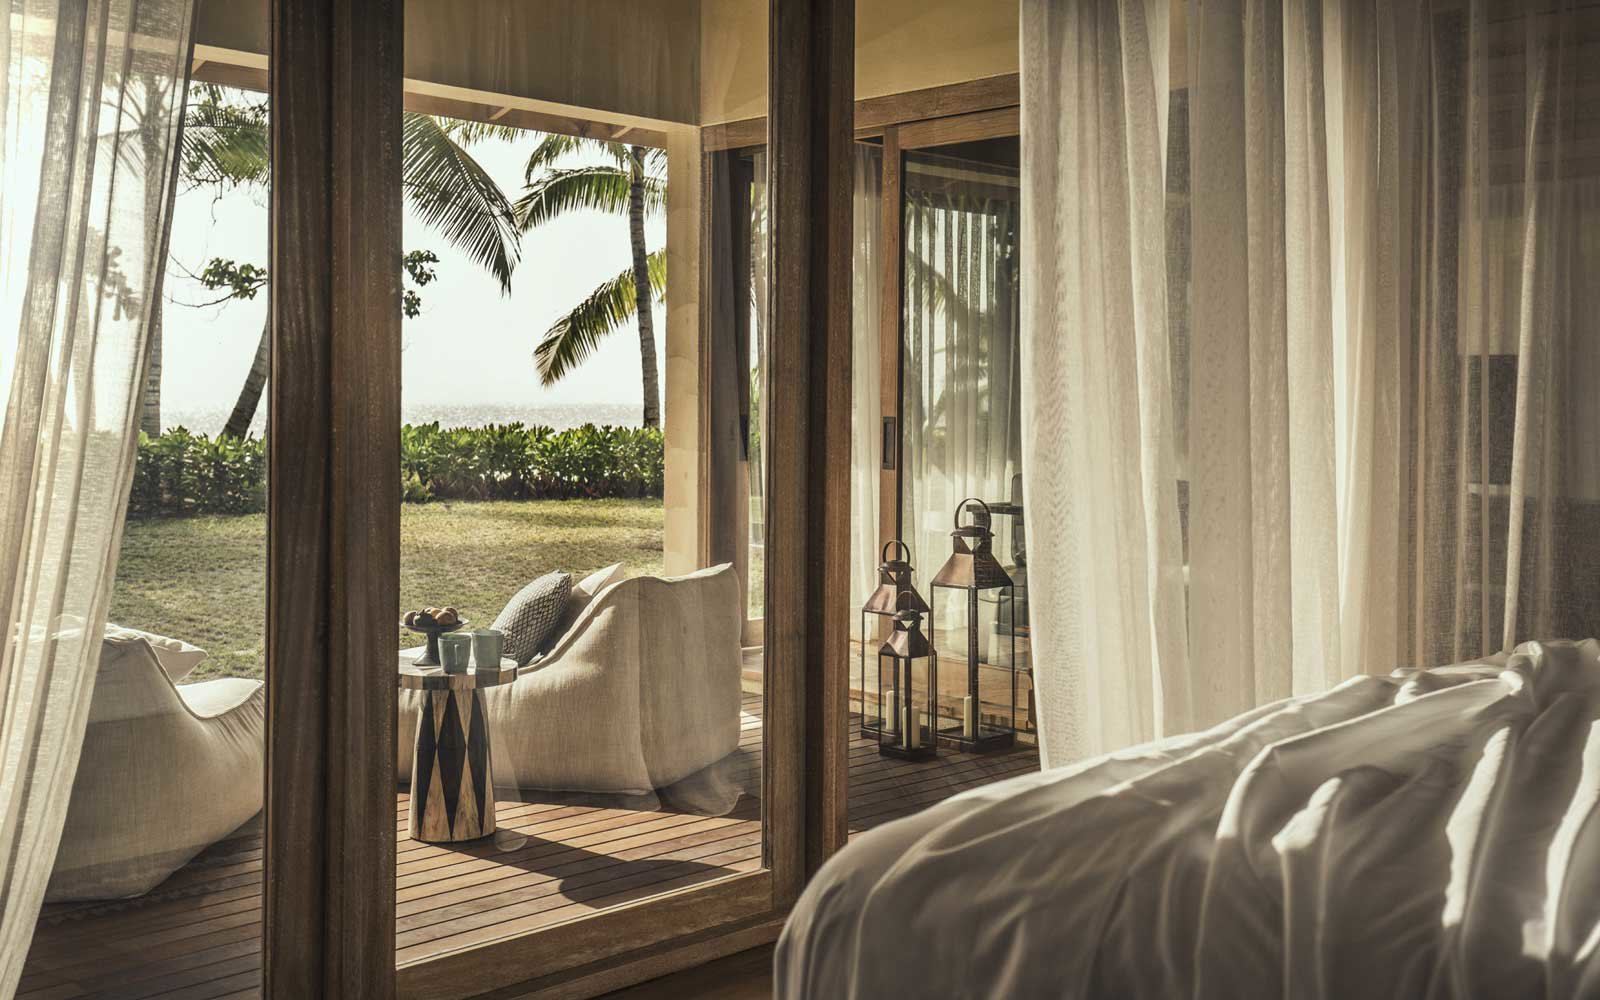 View from a room at the Four Seasons Resort Desroches Island in the Seychelles